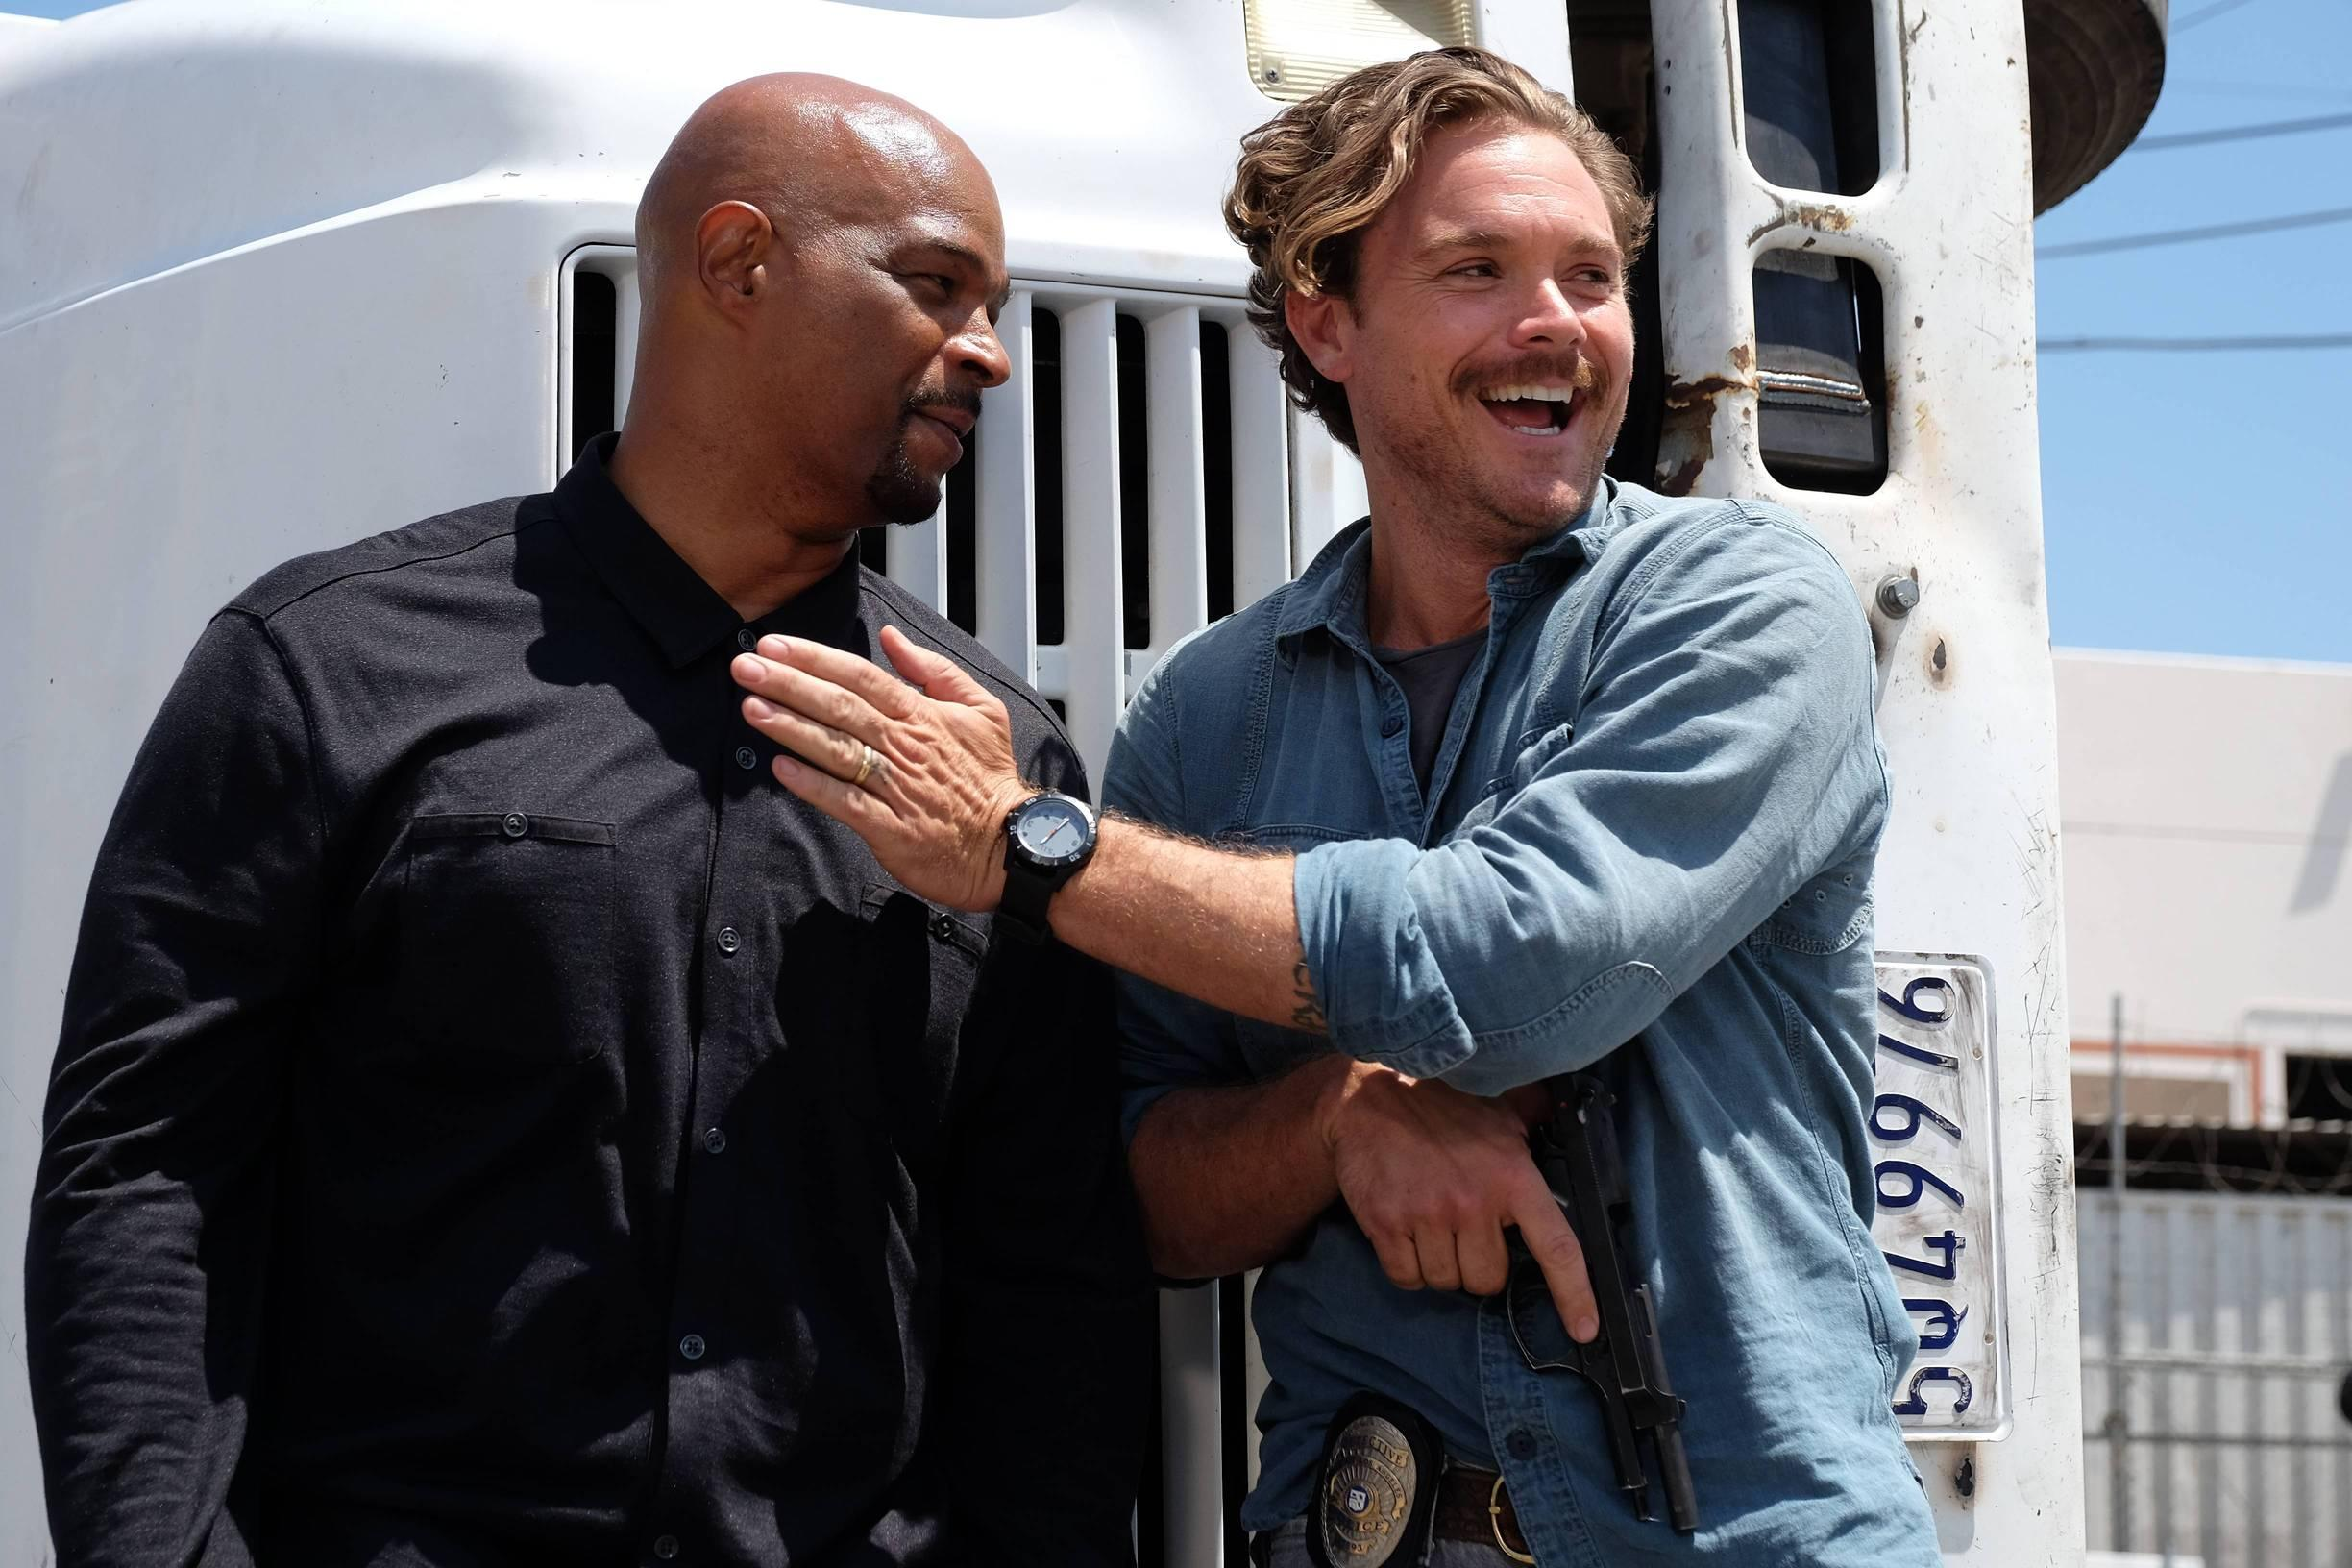 Damon Wayans as Murtaugh and Clayne Crawford as Riggs